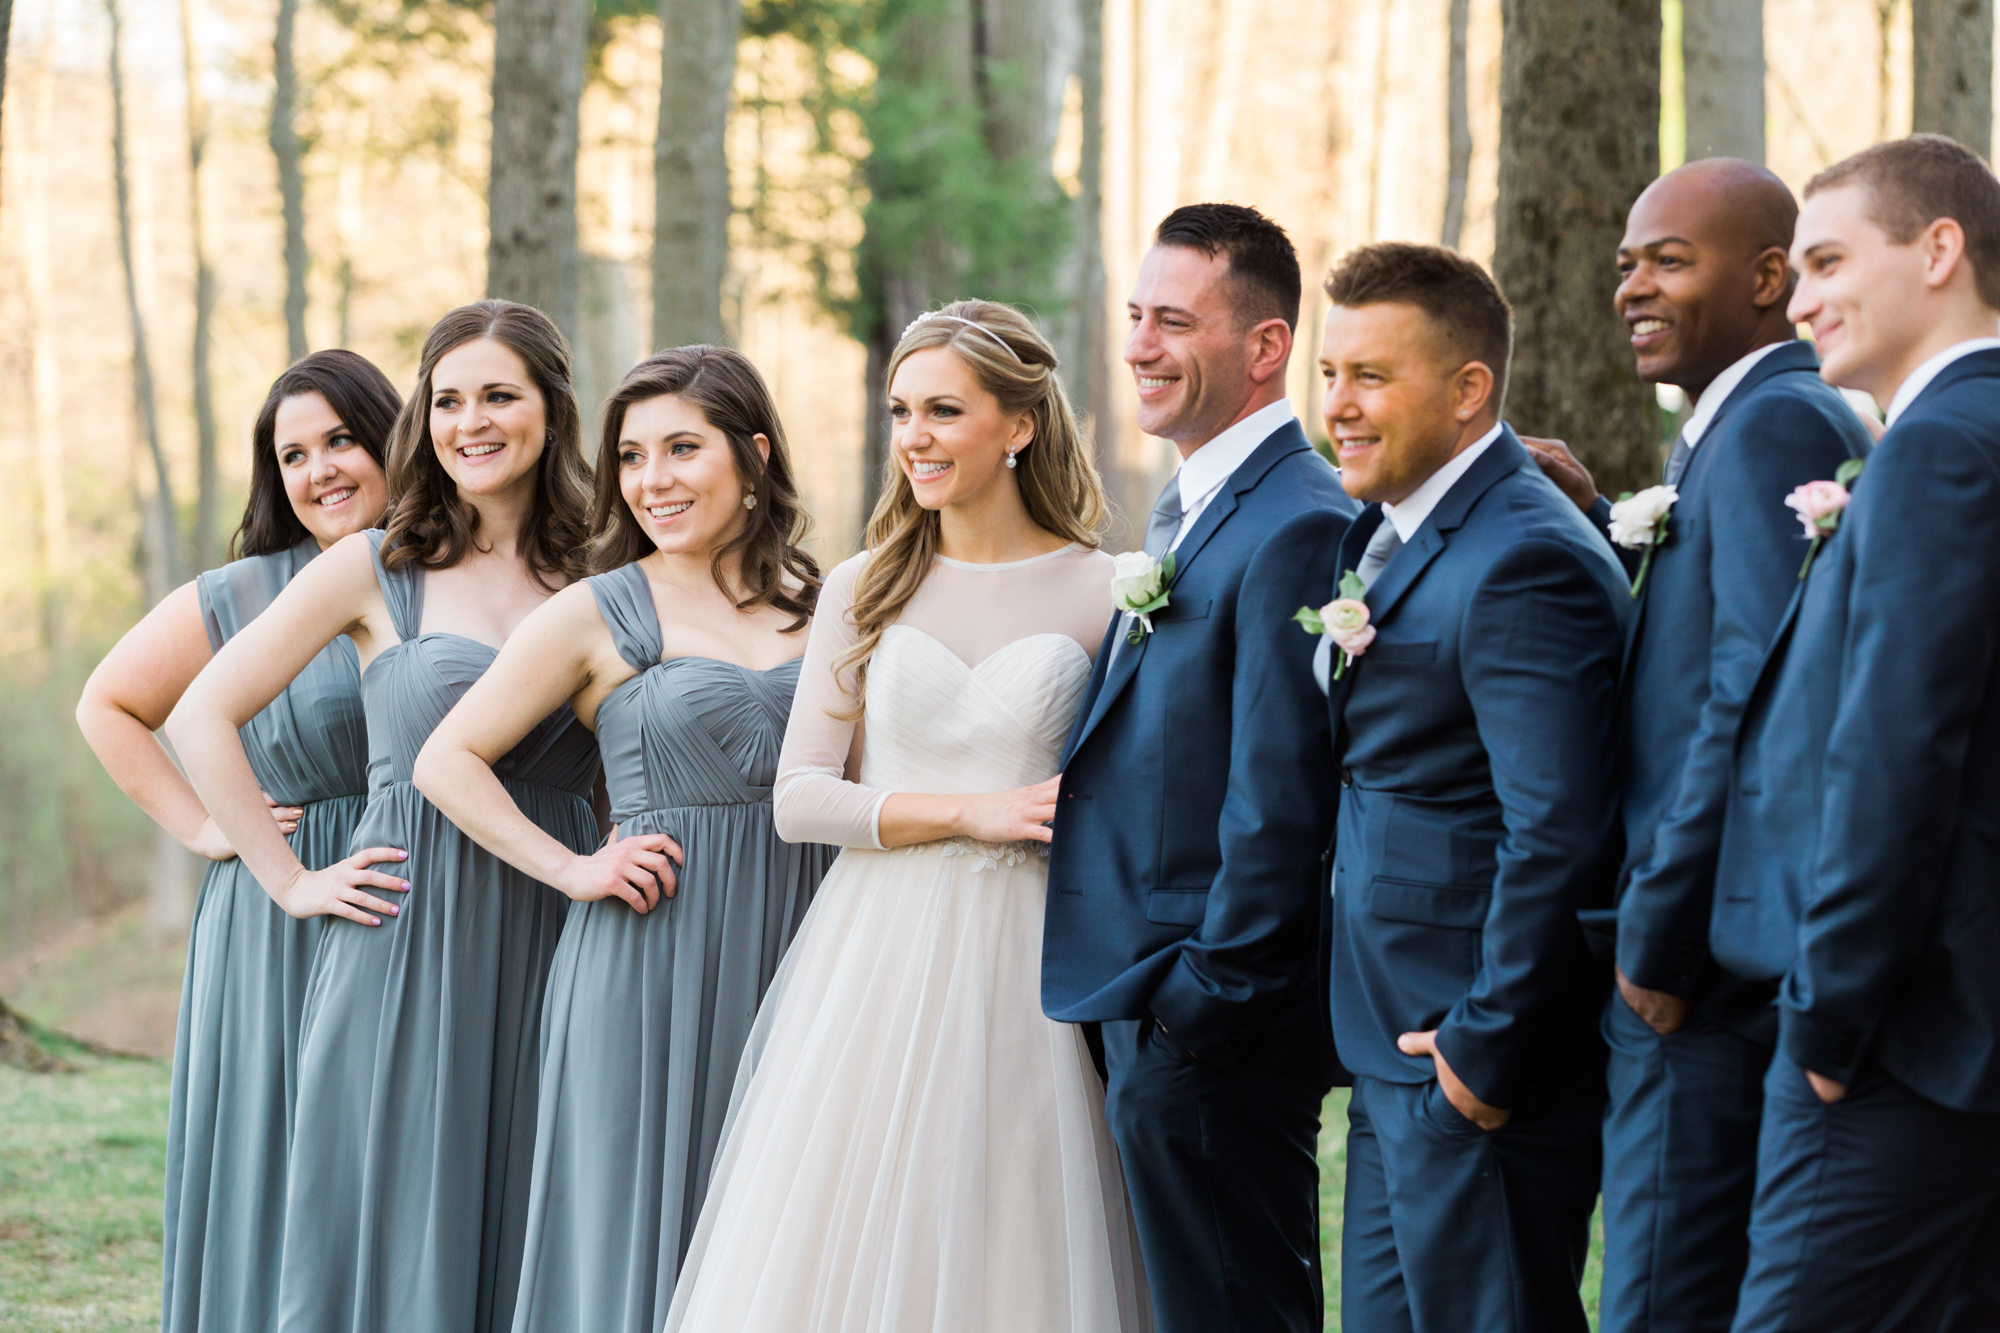 78Allegra_Anderson_Photography_CT_Wedding_Photographer_Riverview_Simsbury_Saleh_Web